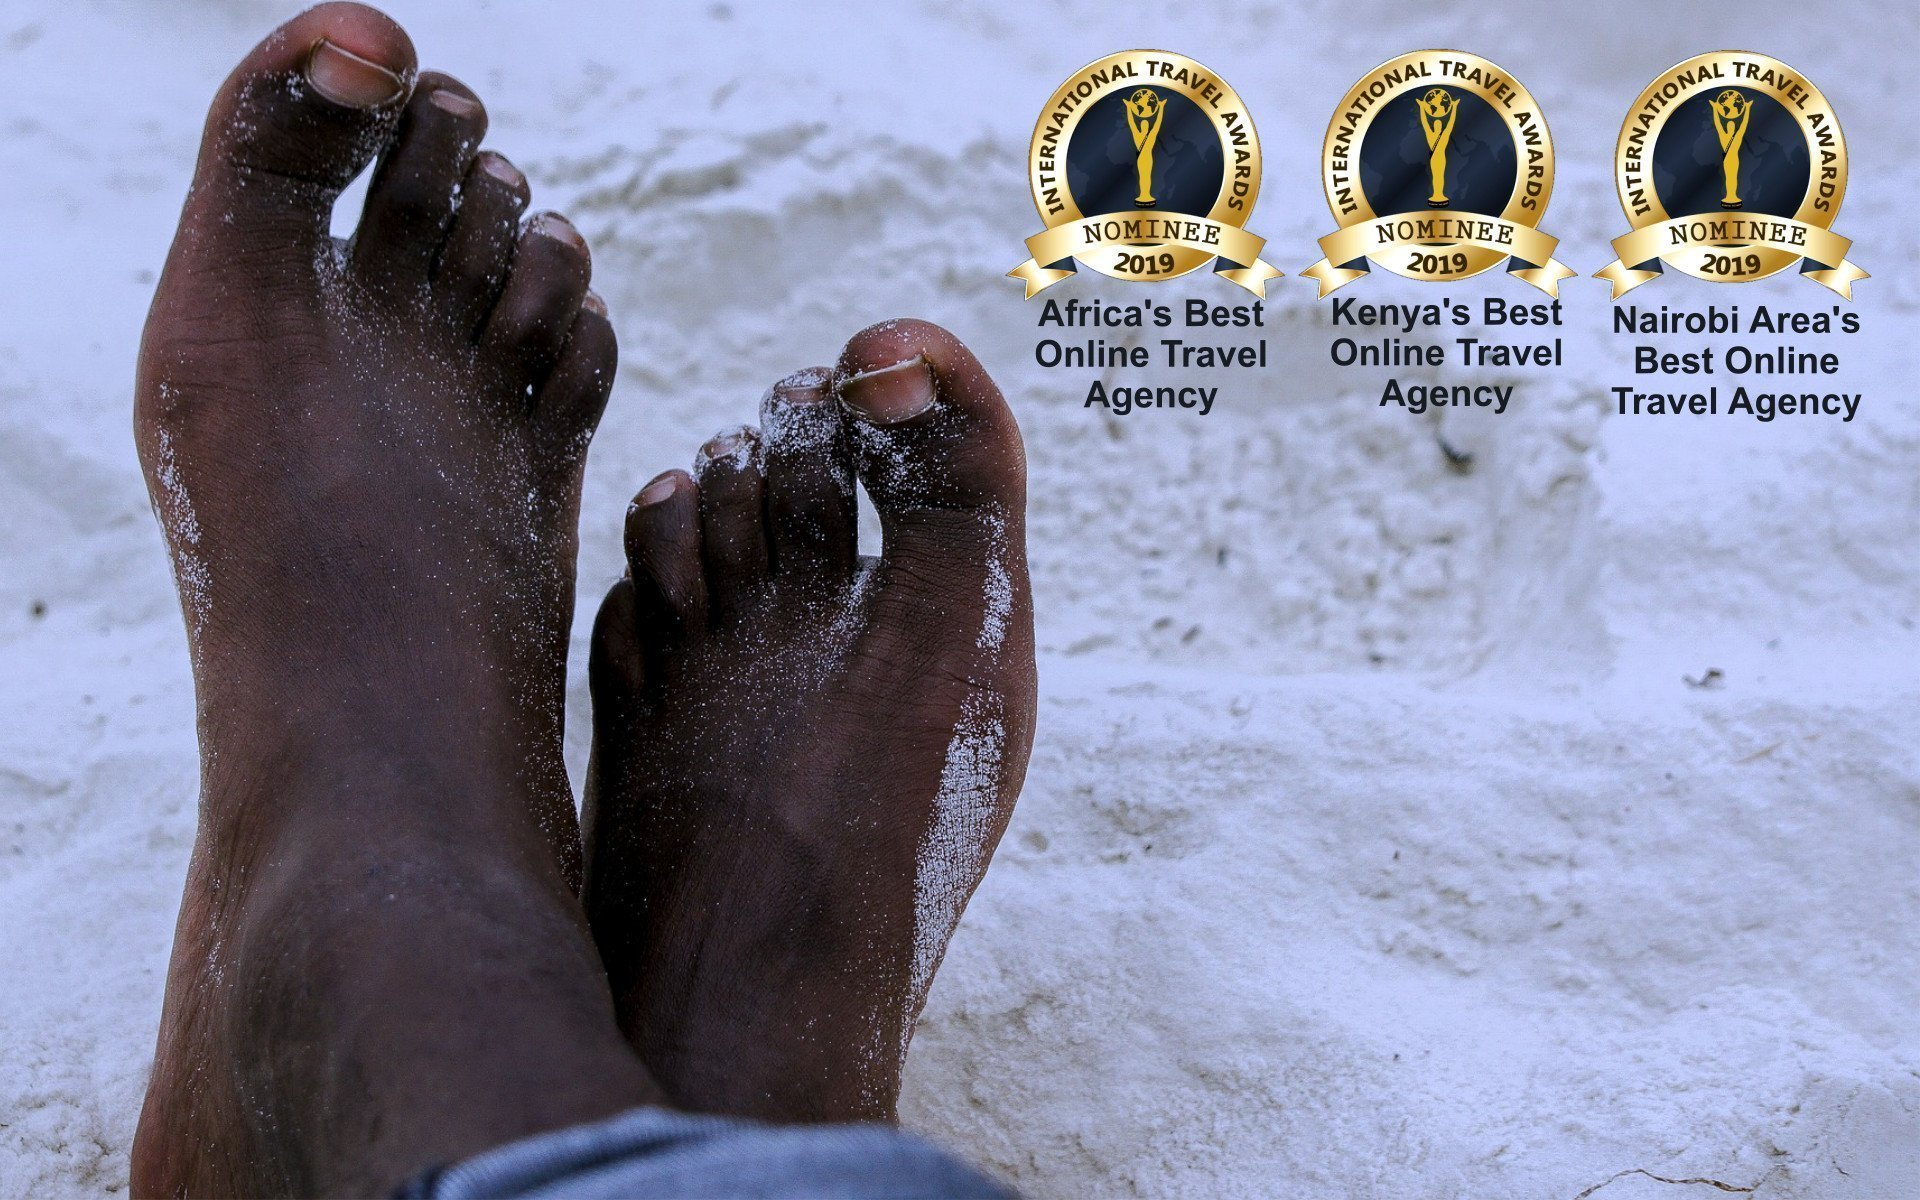 When we got a triple nomination at the 2019 International Travel Awards, including Africa's Best Online Travel Agency, we reflected on humble beginnings.